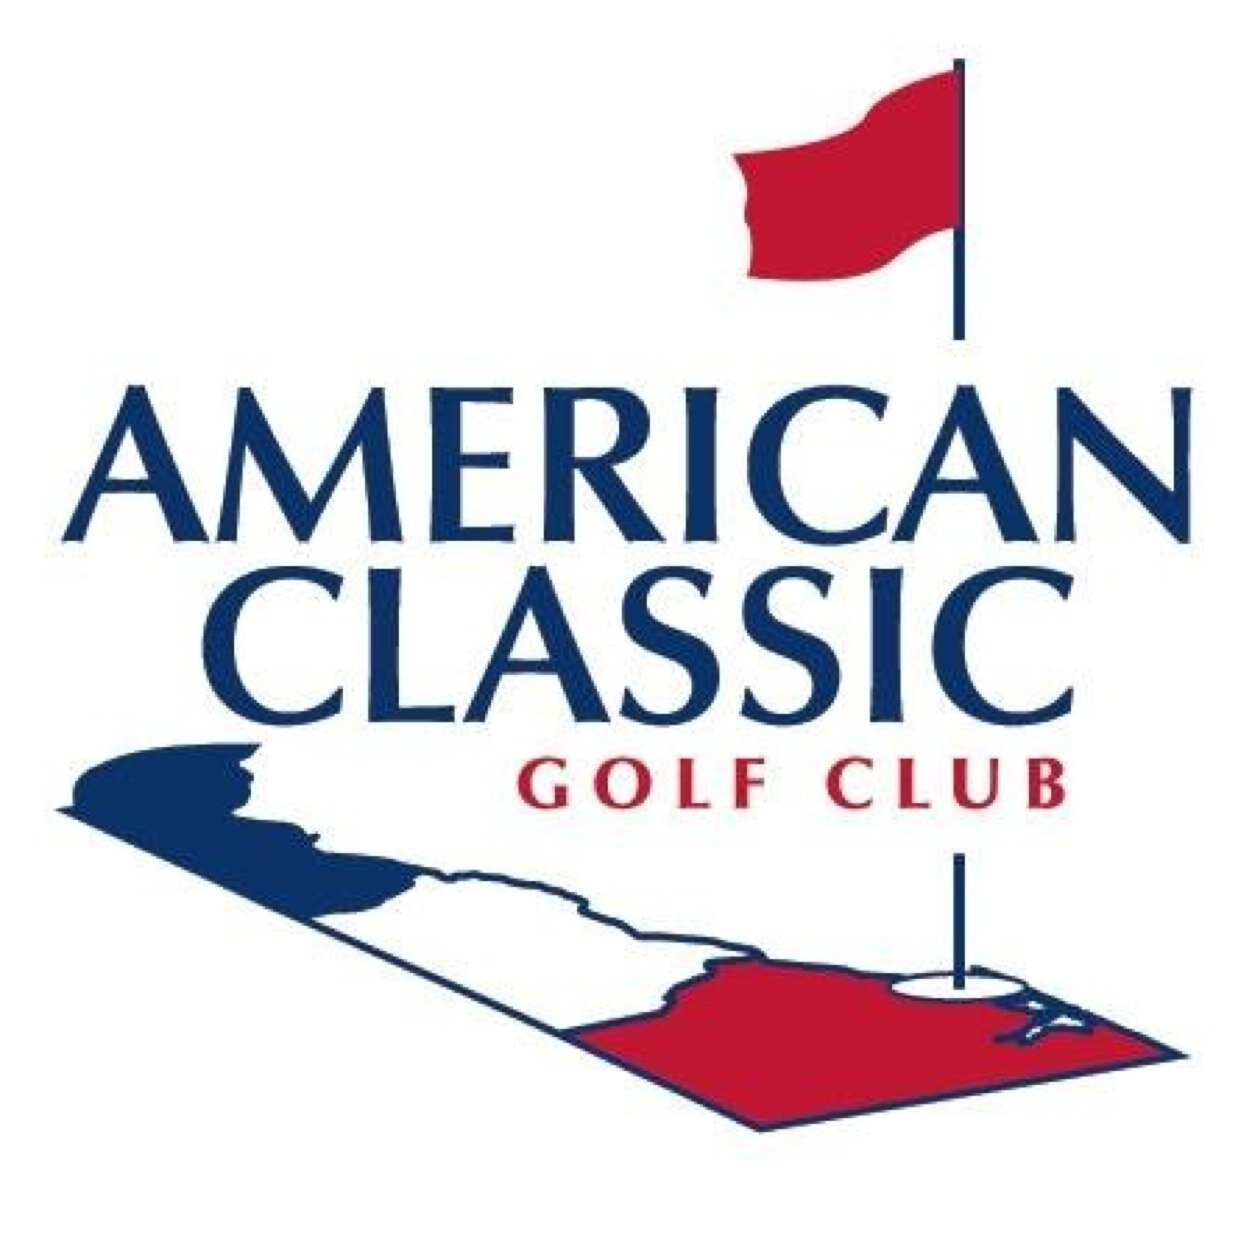 American classic golf american twitter for Best american classics